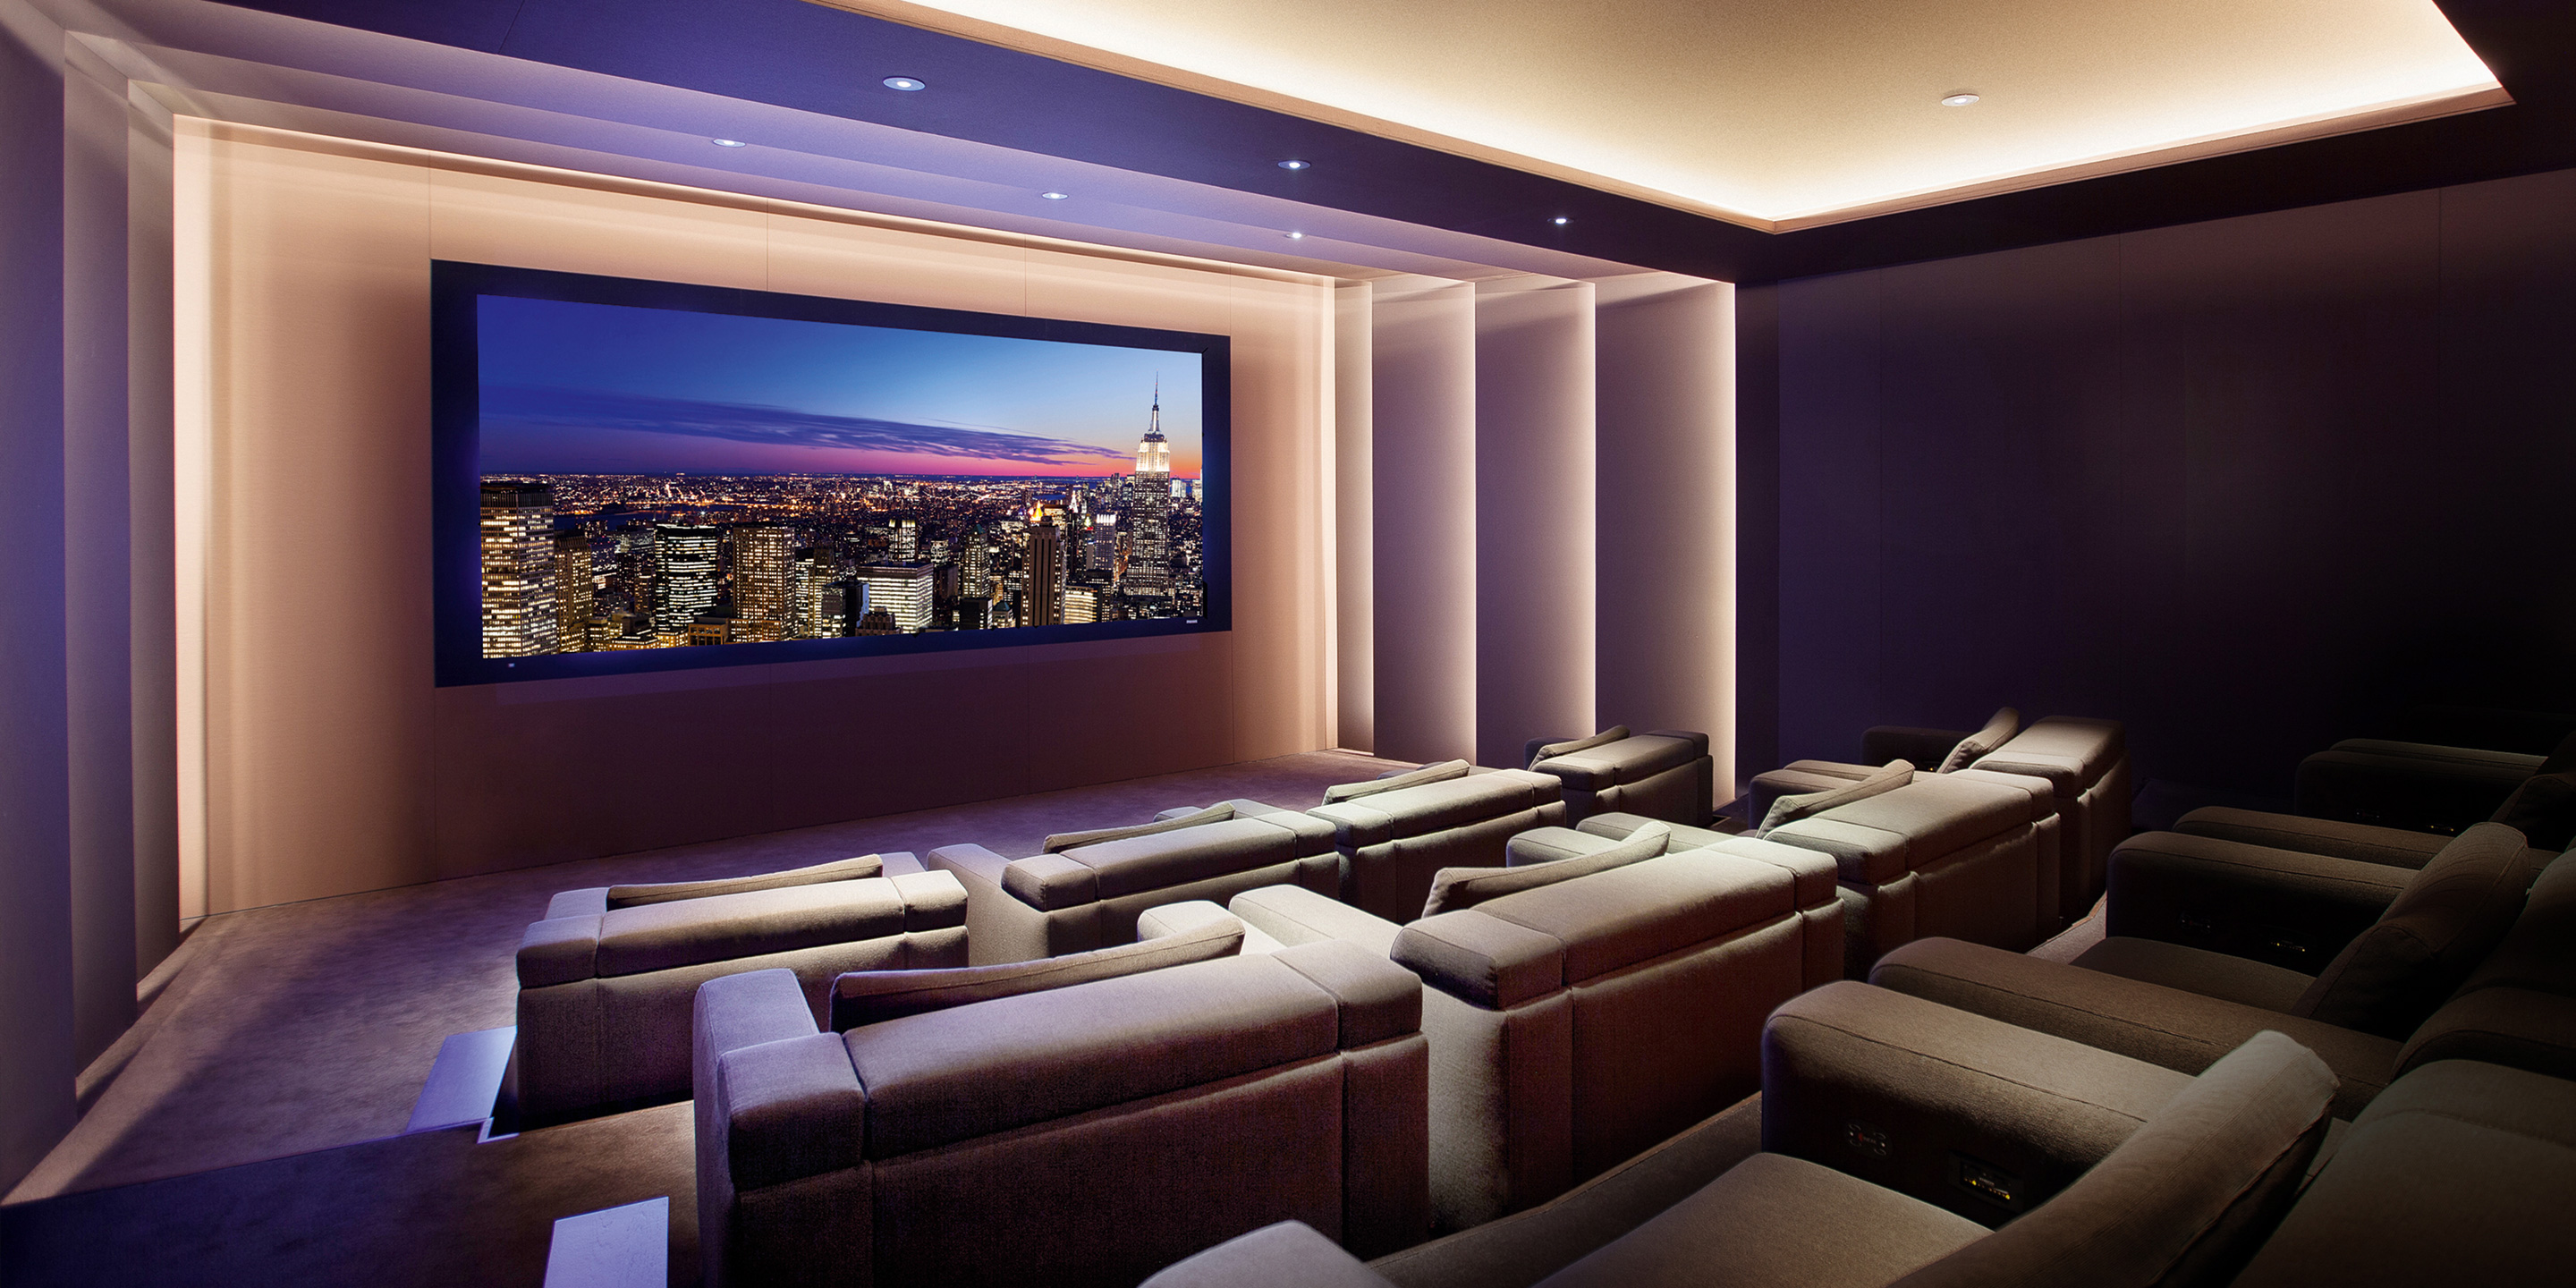 Cineak Cineak Home Theater And Private Cinema Seating